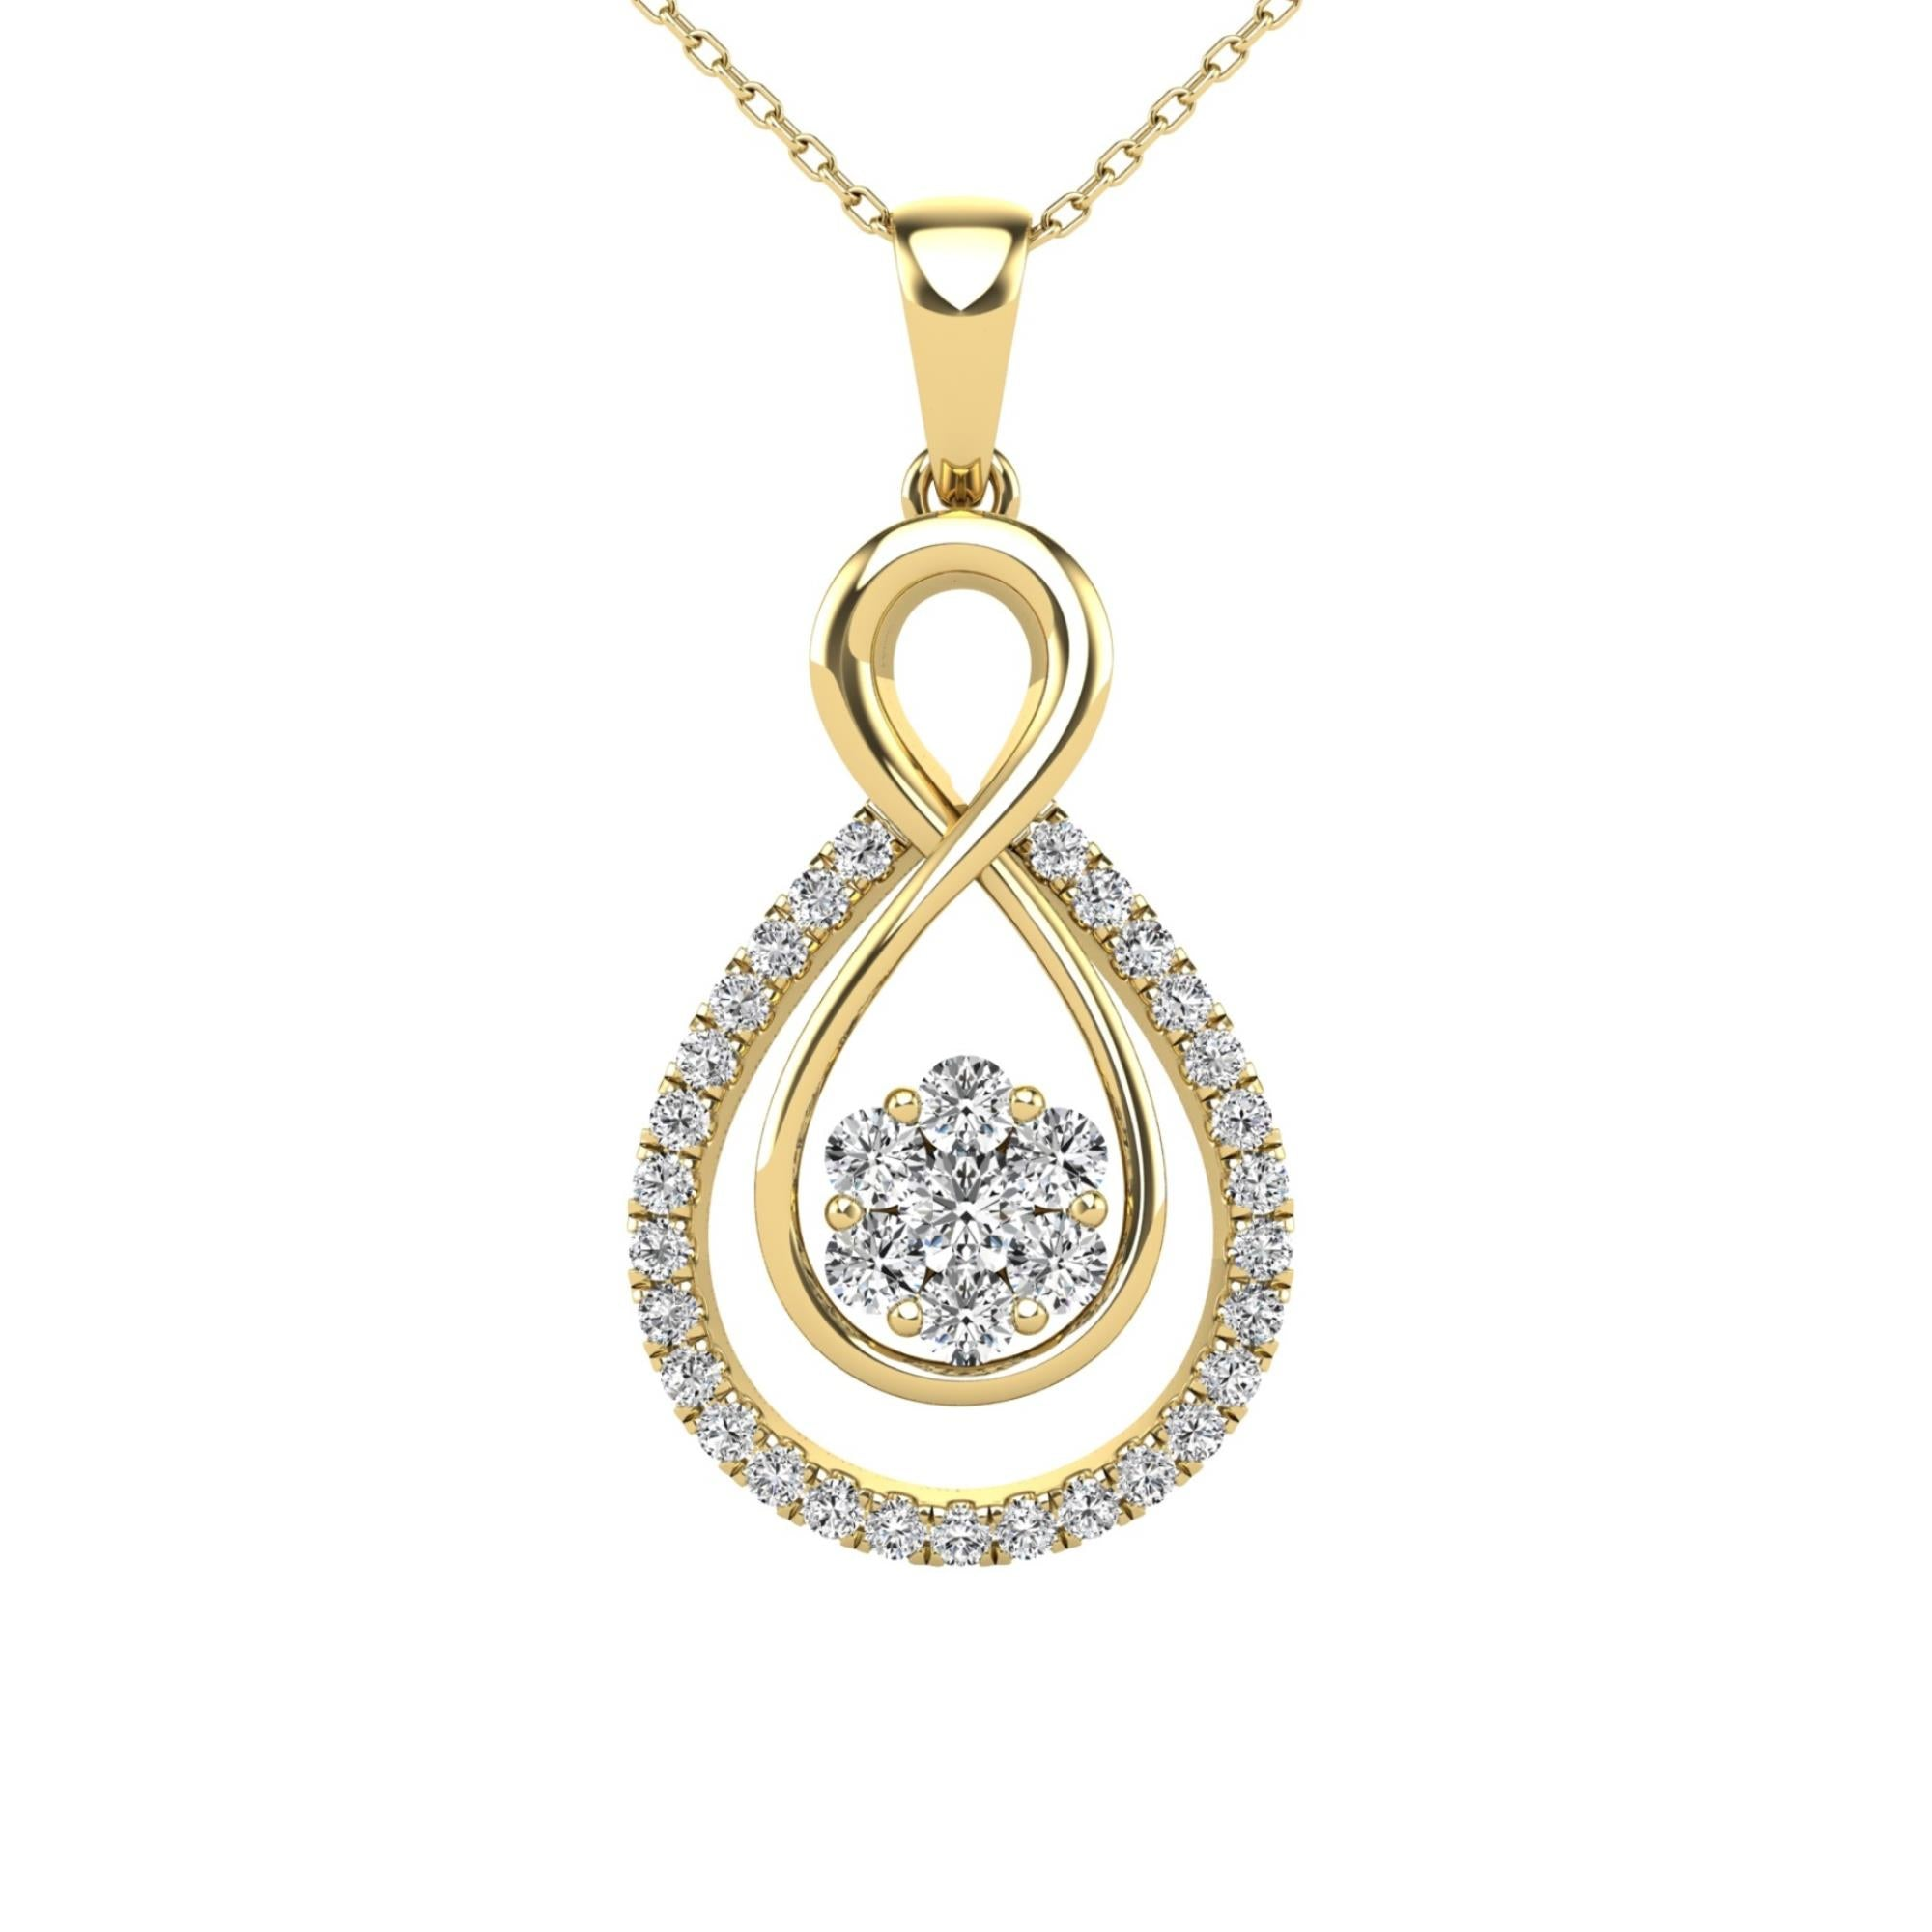 14Kt Yellow Gold 0.32 Ct Genuine Natural Diamond Infinity Design Pendant Necklace